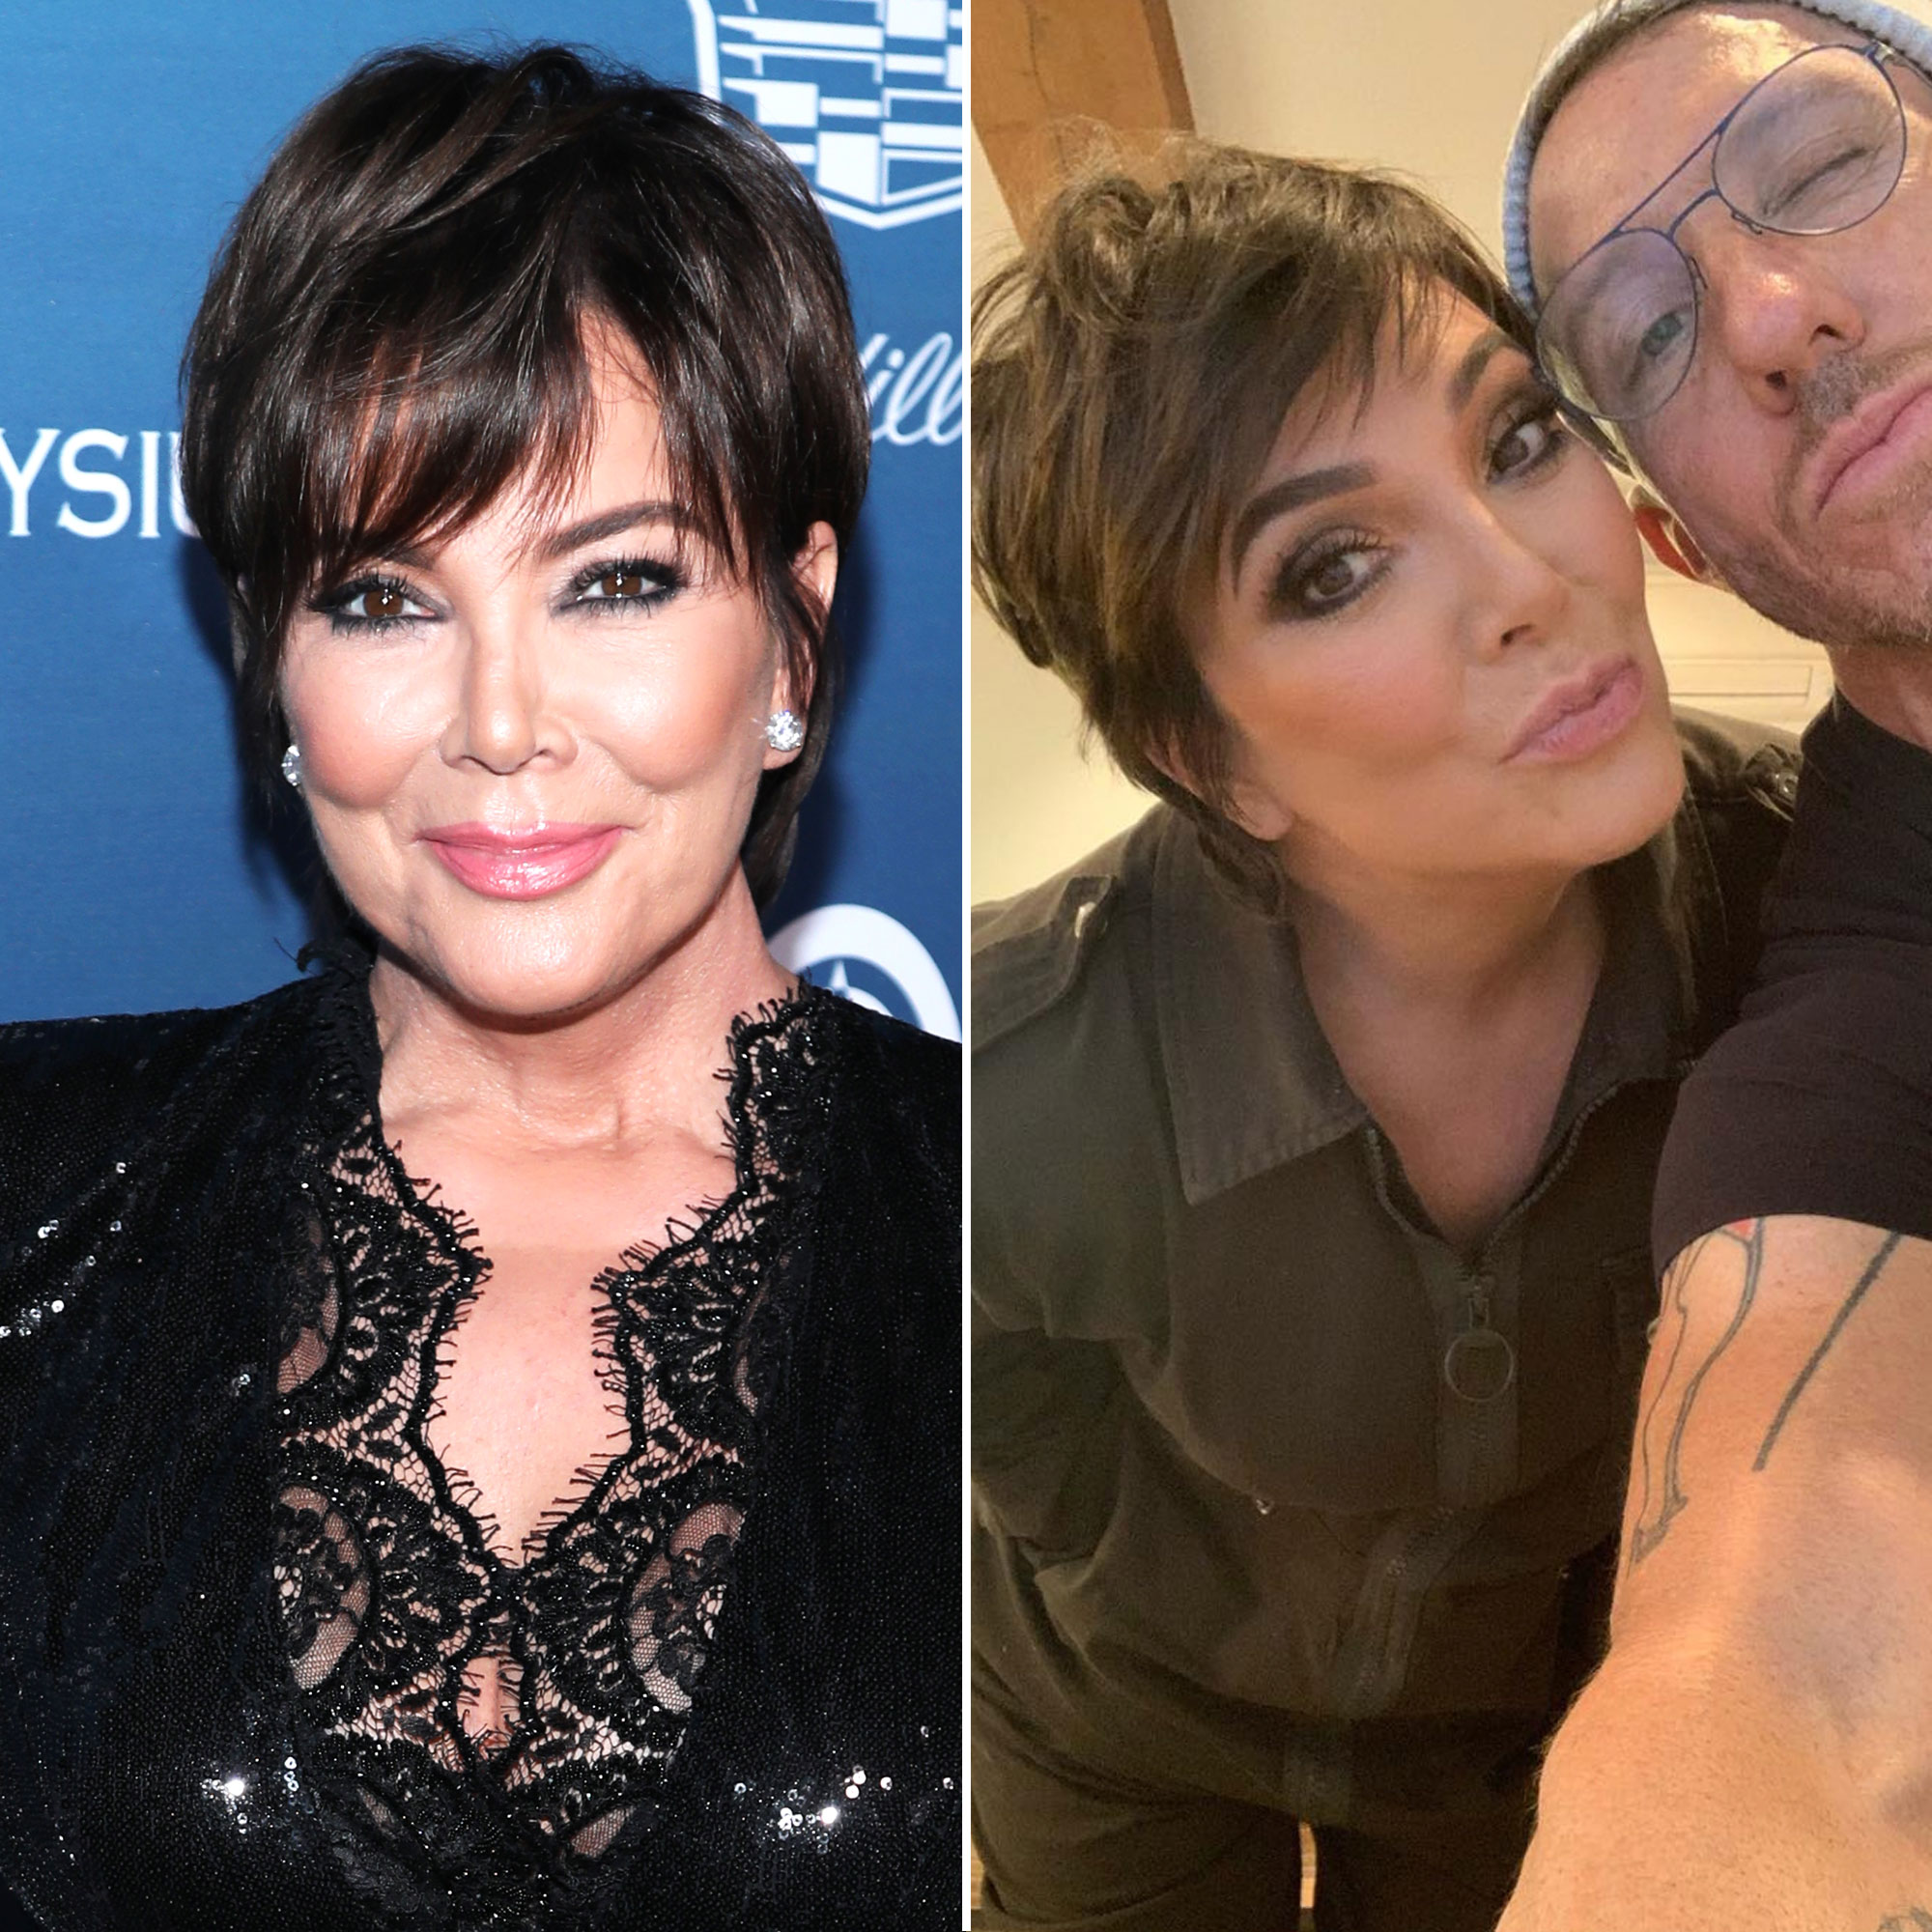 Kris Jenner Ellen DeGeneres and More Stars Have Debuted Fresh New Hairstyles - Busy guy! McMillan also cut Jenner's hair on March 20, giving her slightly choppier layers for added height.